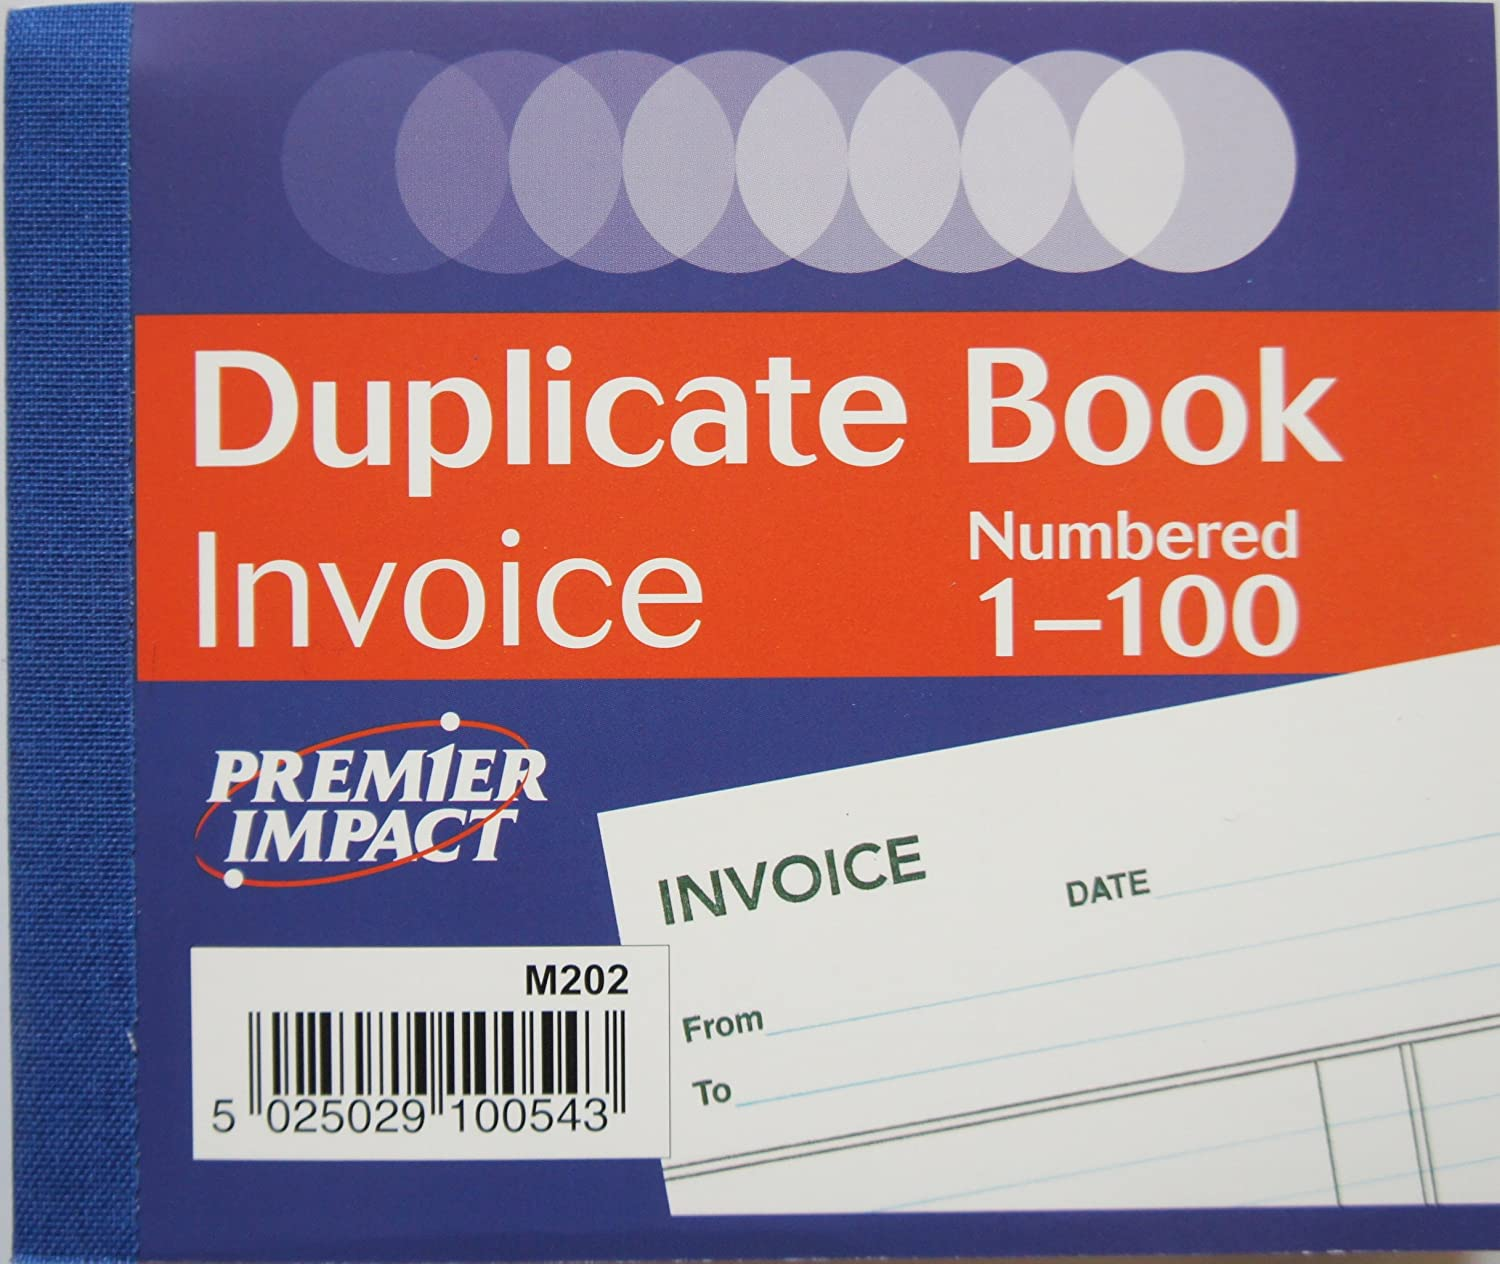 PREMIER IMPACT DUPLICATE CARBON INVOICE BOOK NUMBERED 1-100